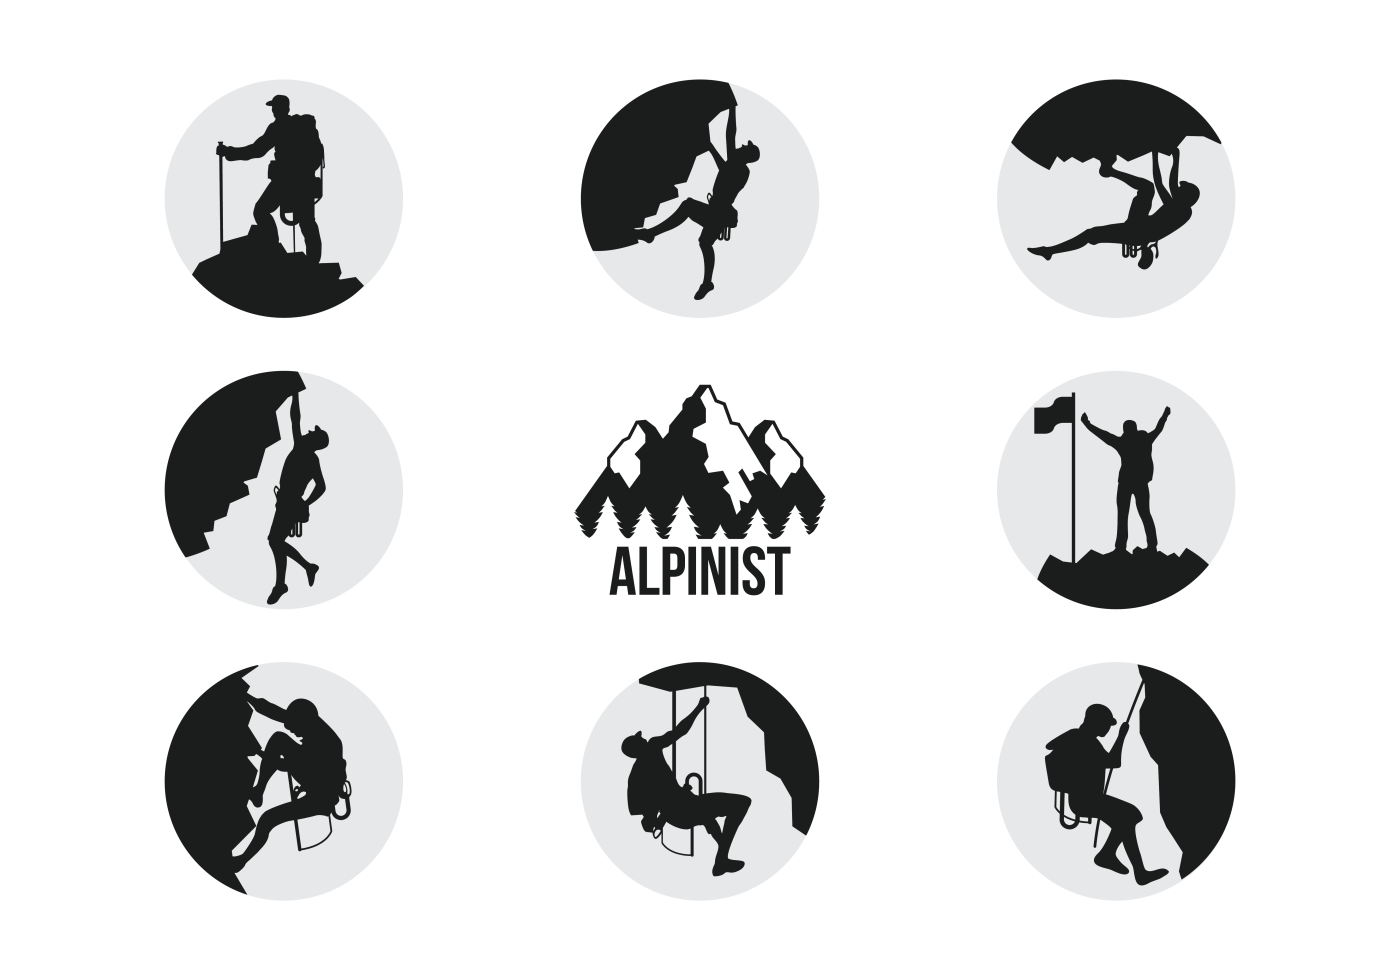 Alpinists Climbers Silhouettes Vector Download Free